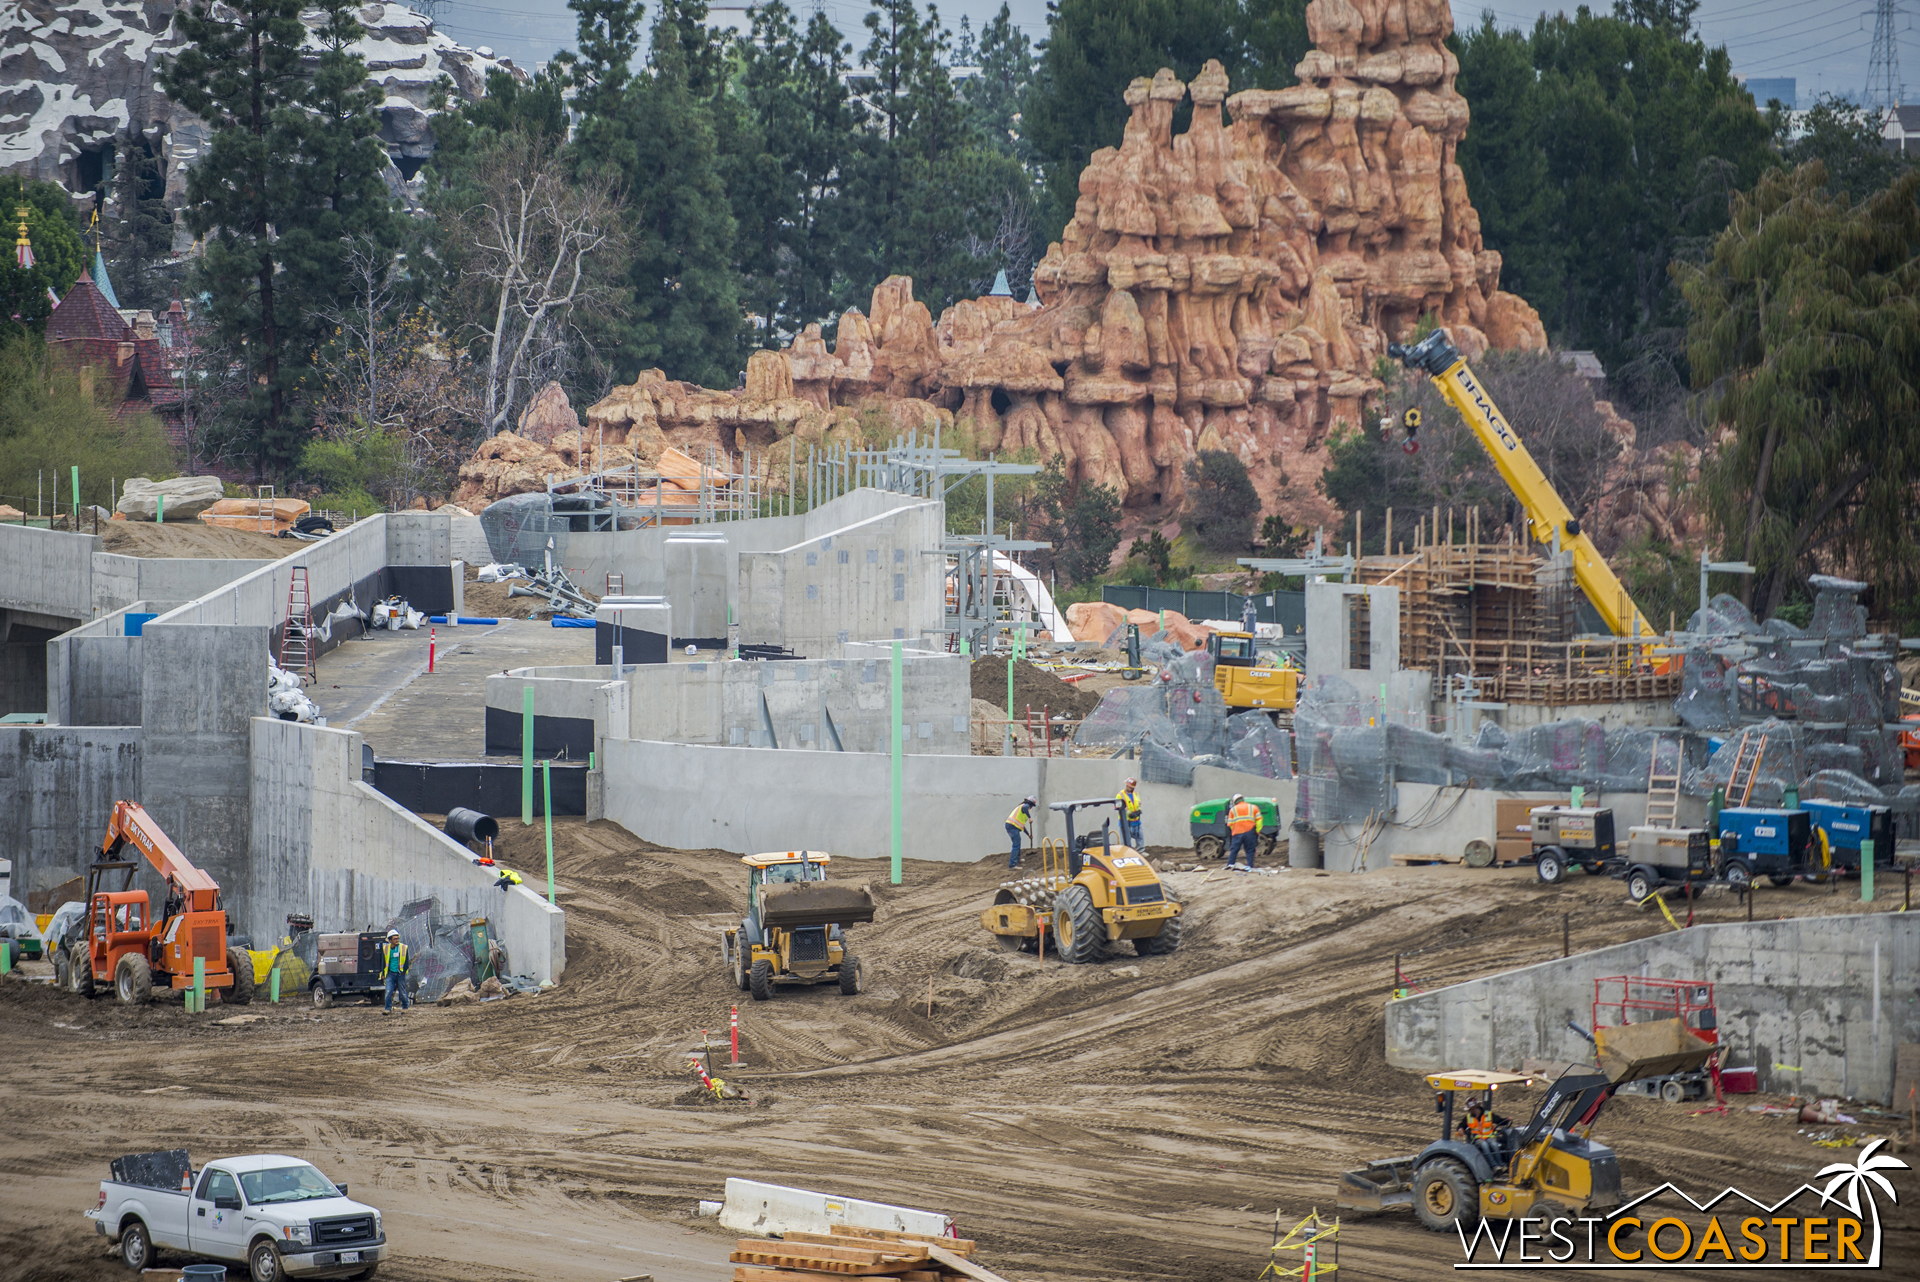 """In addition, there looks to be a bit of a bridge over one of the future entry portals of """"Star Wars"""" Land, presumably to provide service access and connect from backstage of Fantasyland/Frontierland. This looks similar to a  service crossing at Mysterious Island at Tokyo Disney Sea  that is masked by a tunnel from the park guest perspective."""